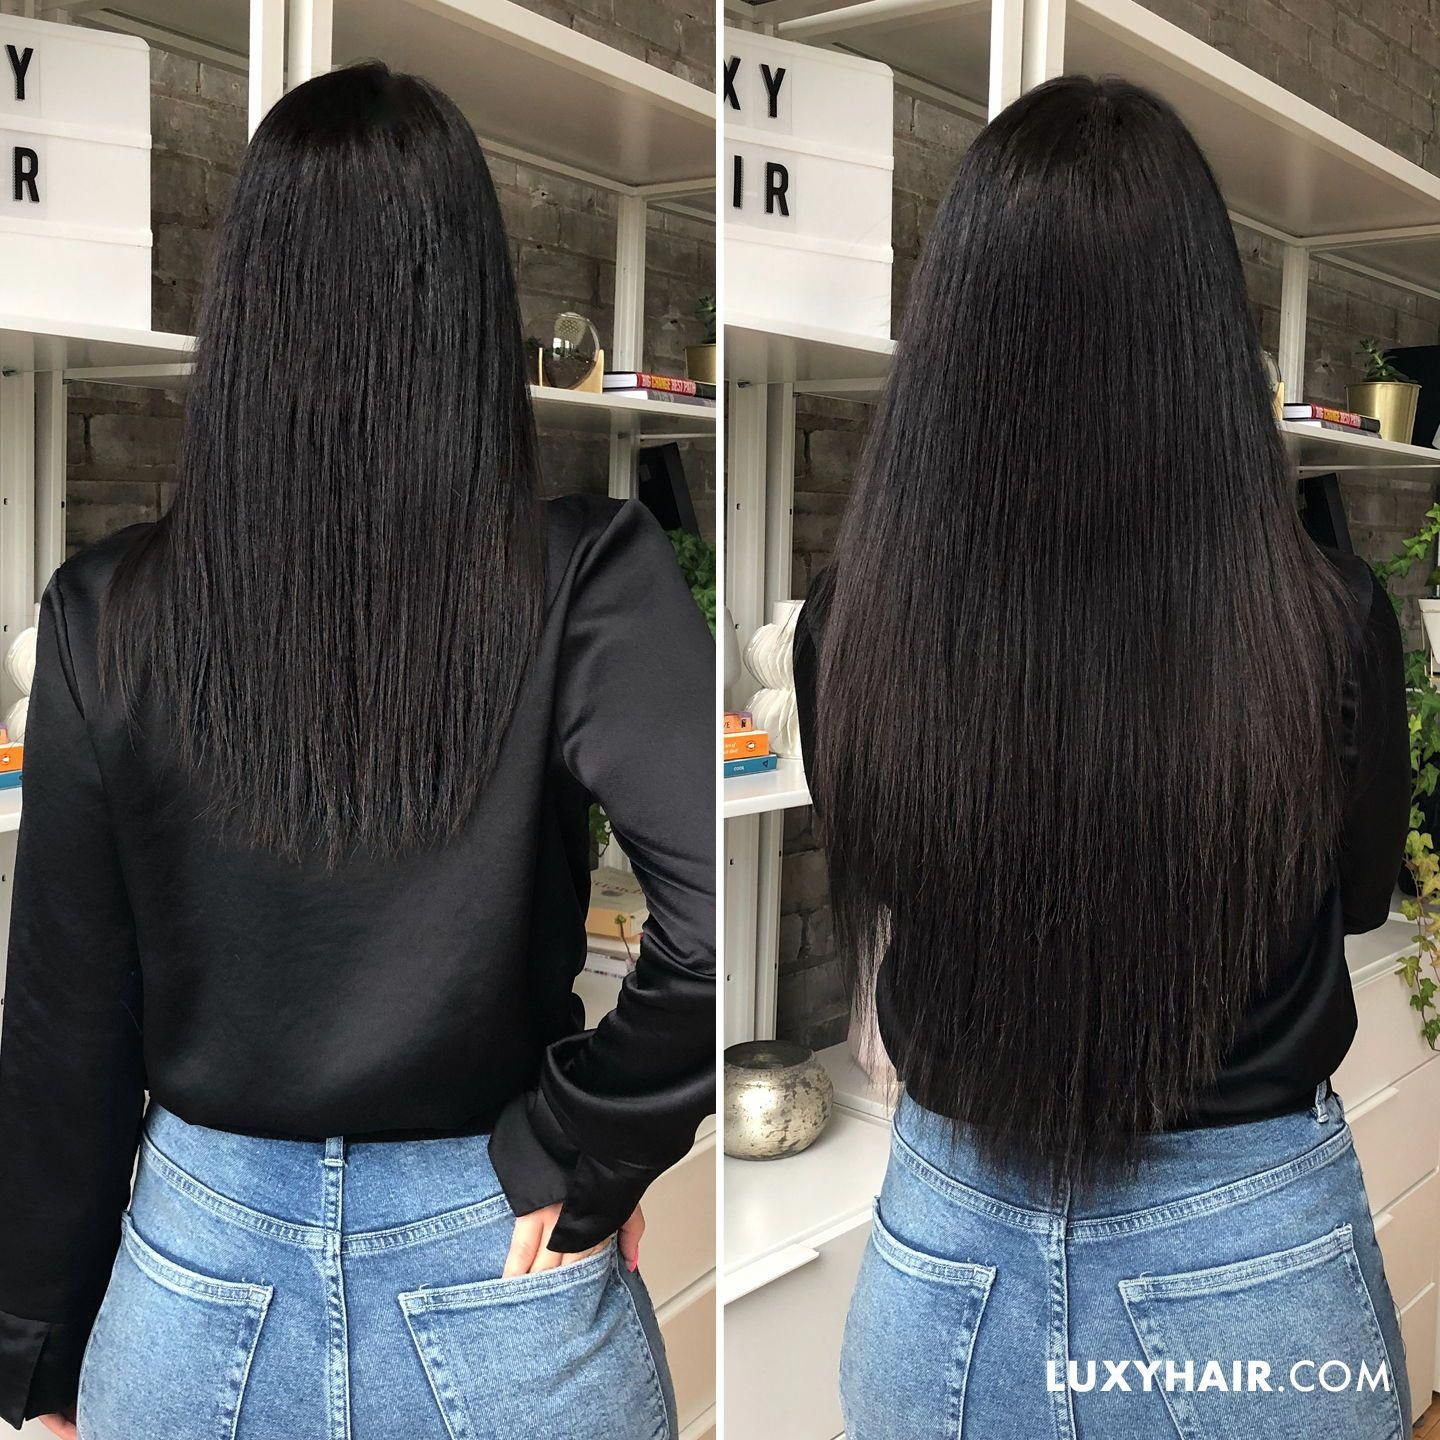 Black Wigs For Black Women Heatless Curls For Short Hair Short Curly Afro Human Hair Wigs Short Black Wigs For Sale Best Flat Iron For Waves